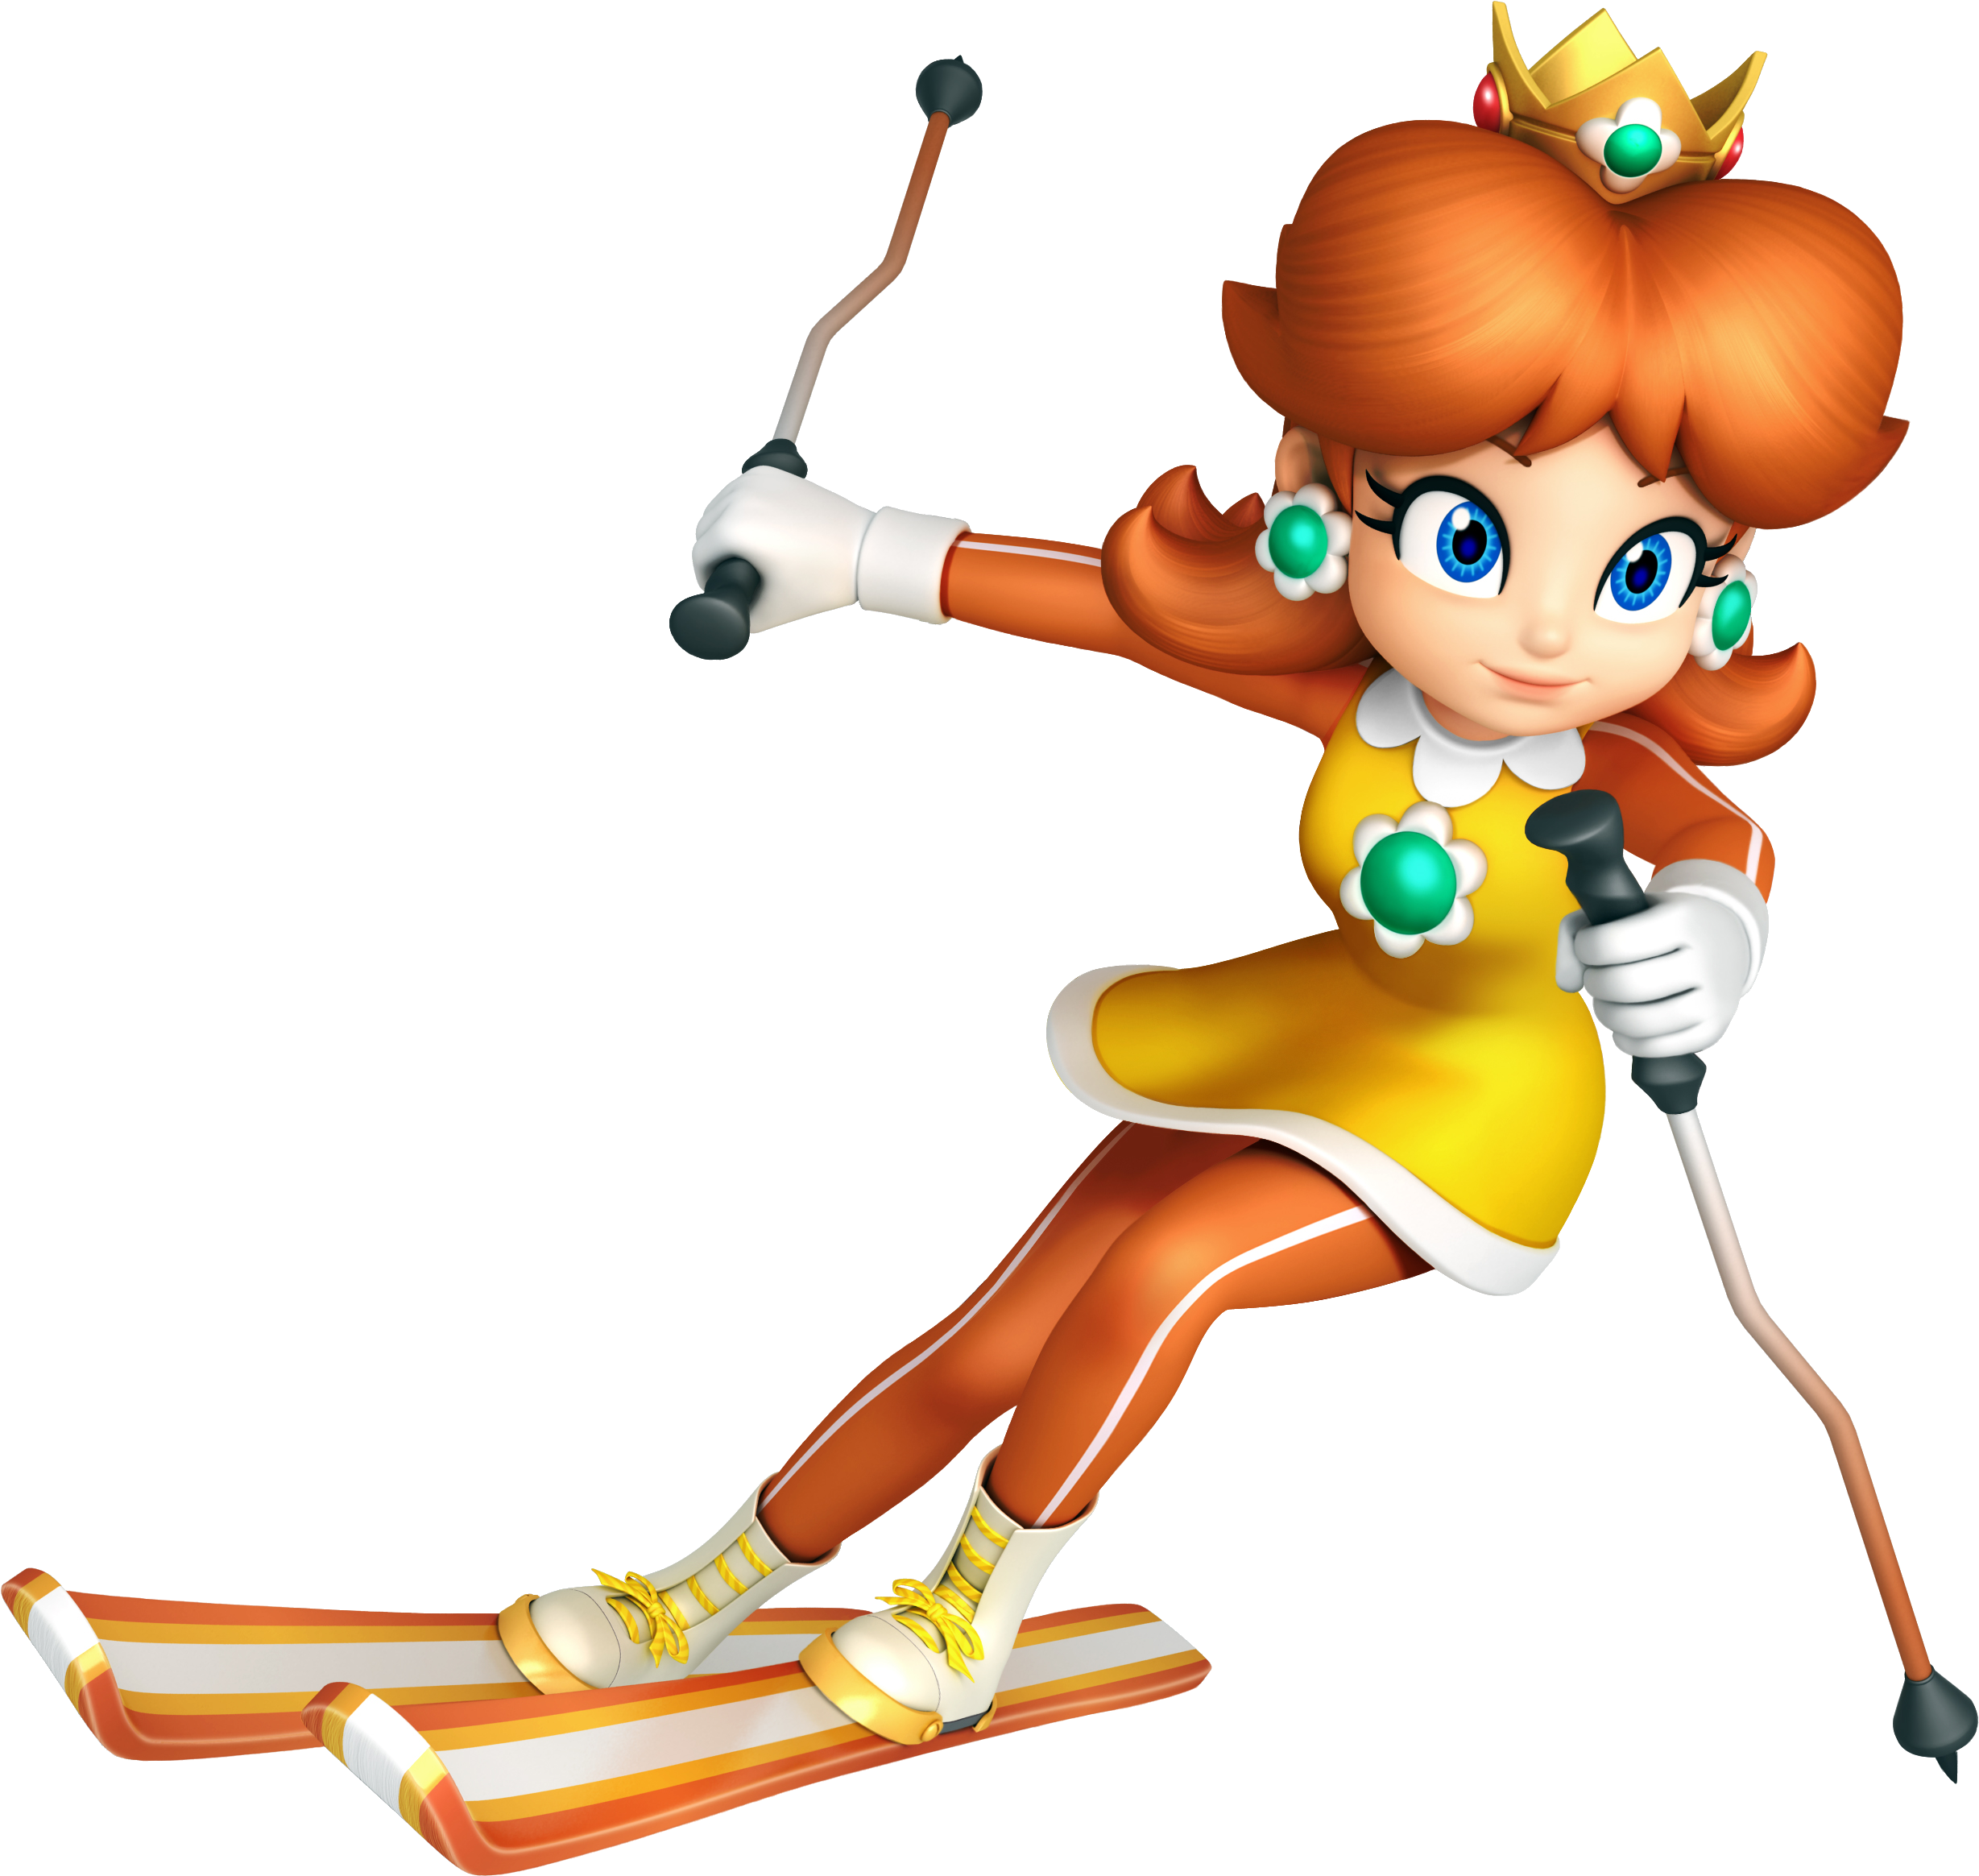 Transparent skiing clipart - Princess Daisy Skiing By Daisy4eva On Clipart Library - Mario And Sonic At The Olympic Winter Games Daisy